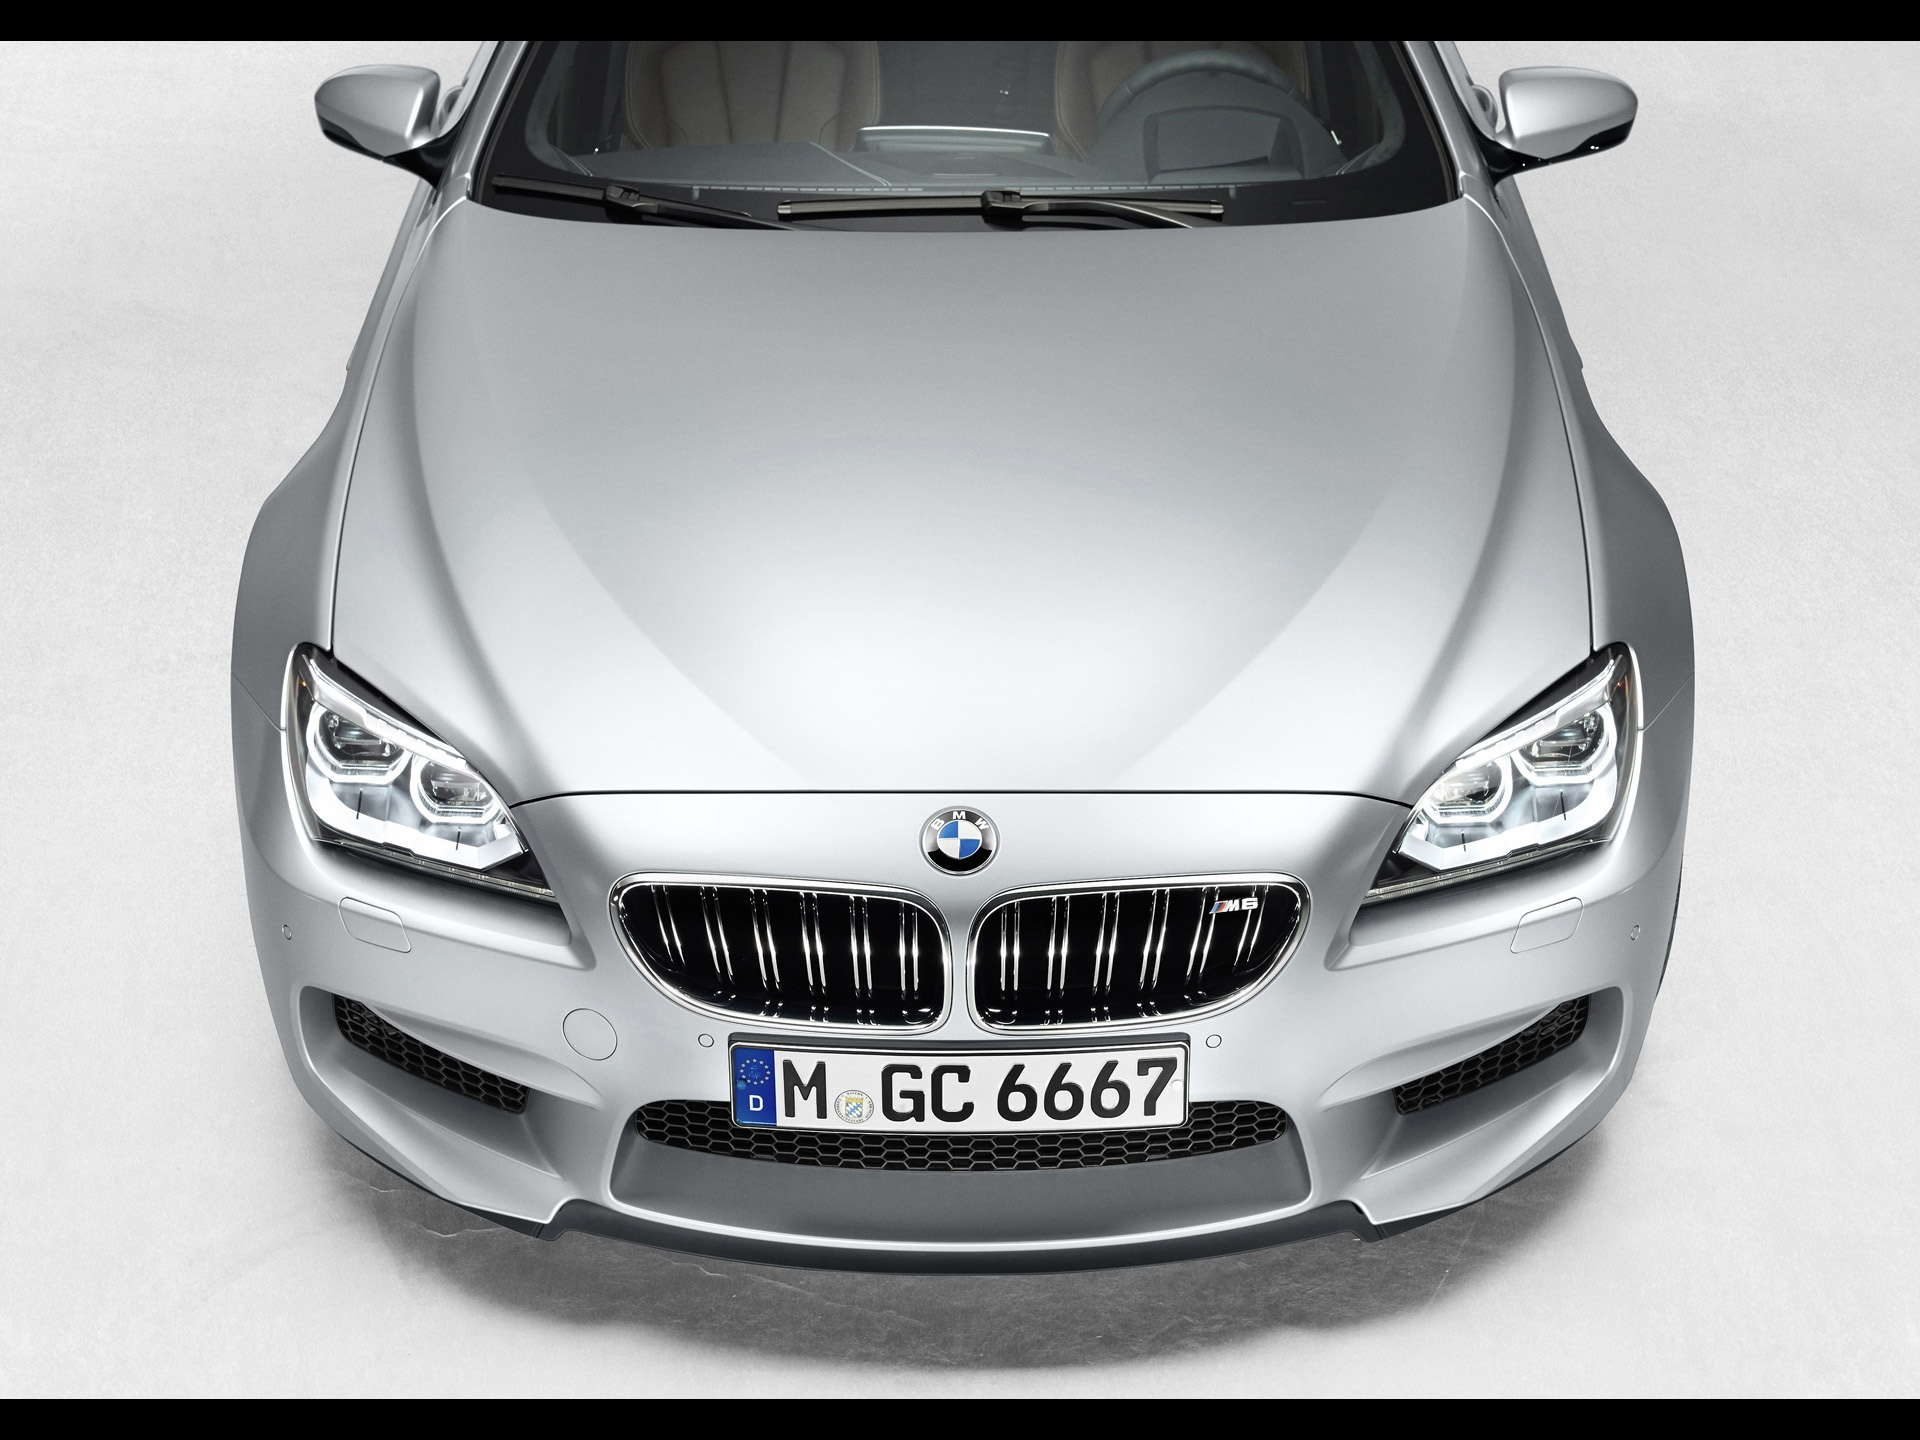 2013 Bmw M6 Gran Coupe Bonnet Section Studio Wallpapers